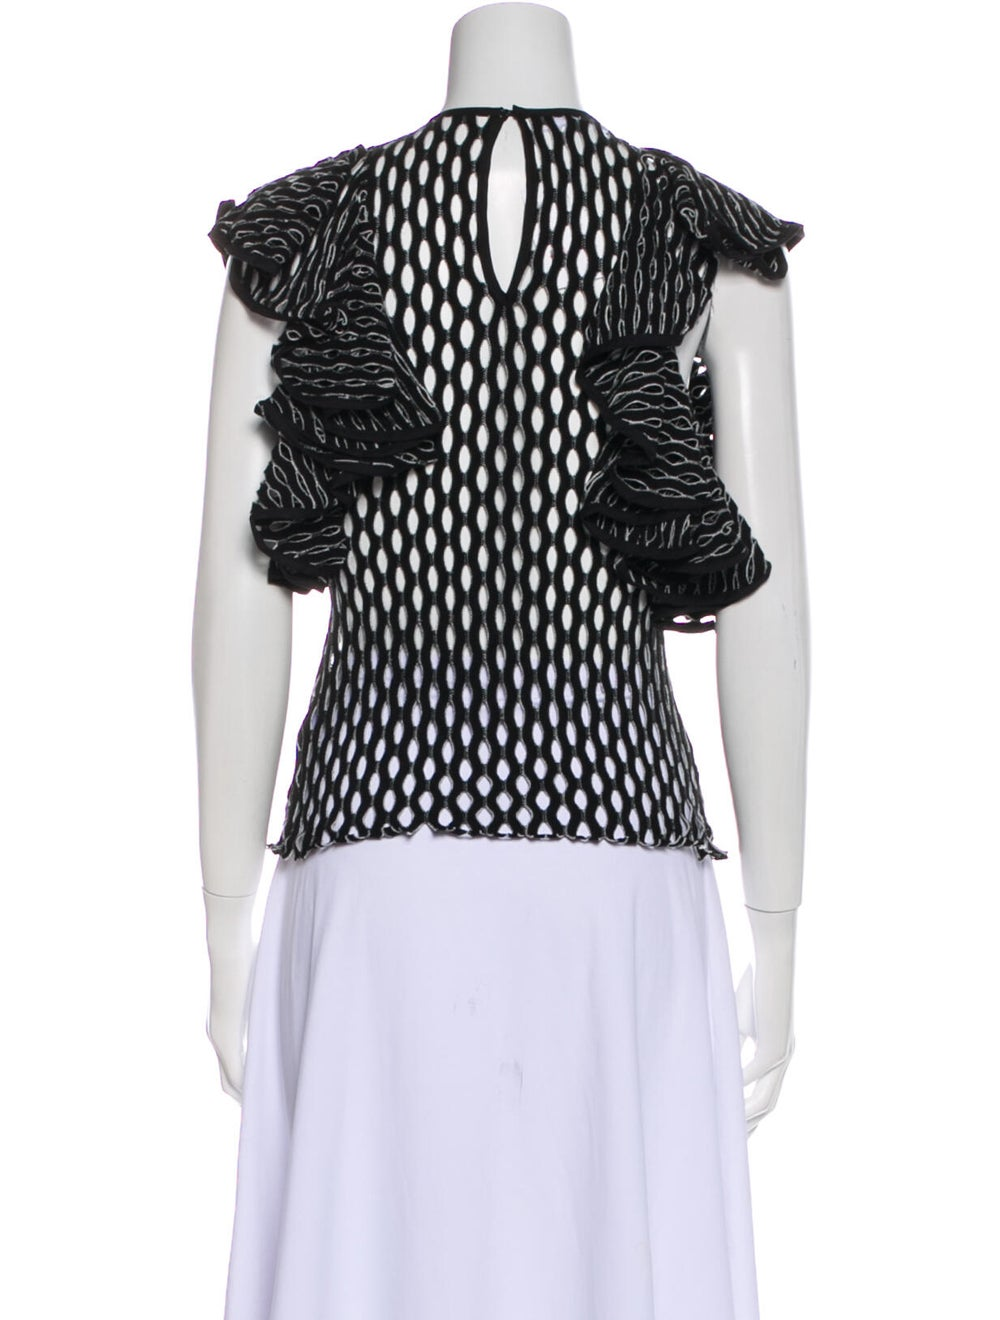 Beaufille Printed Crew Neck Blouse Black - image 3